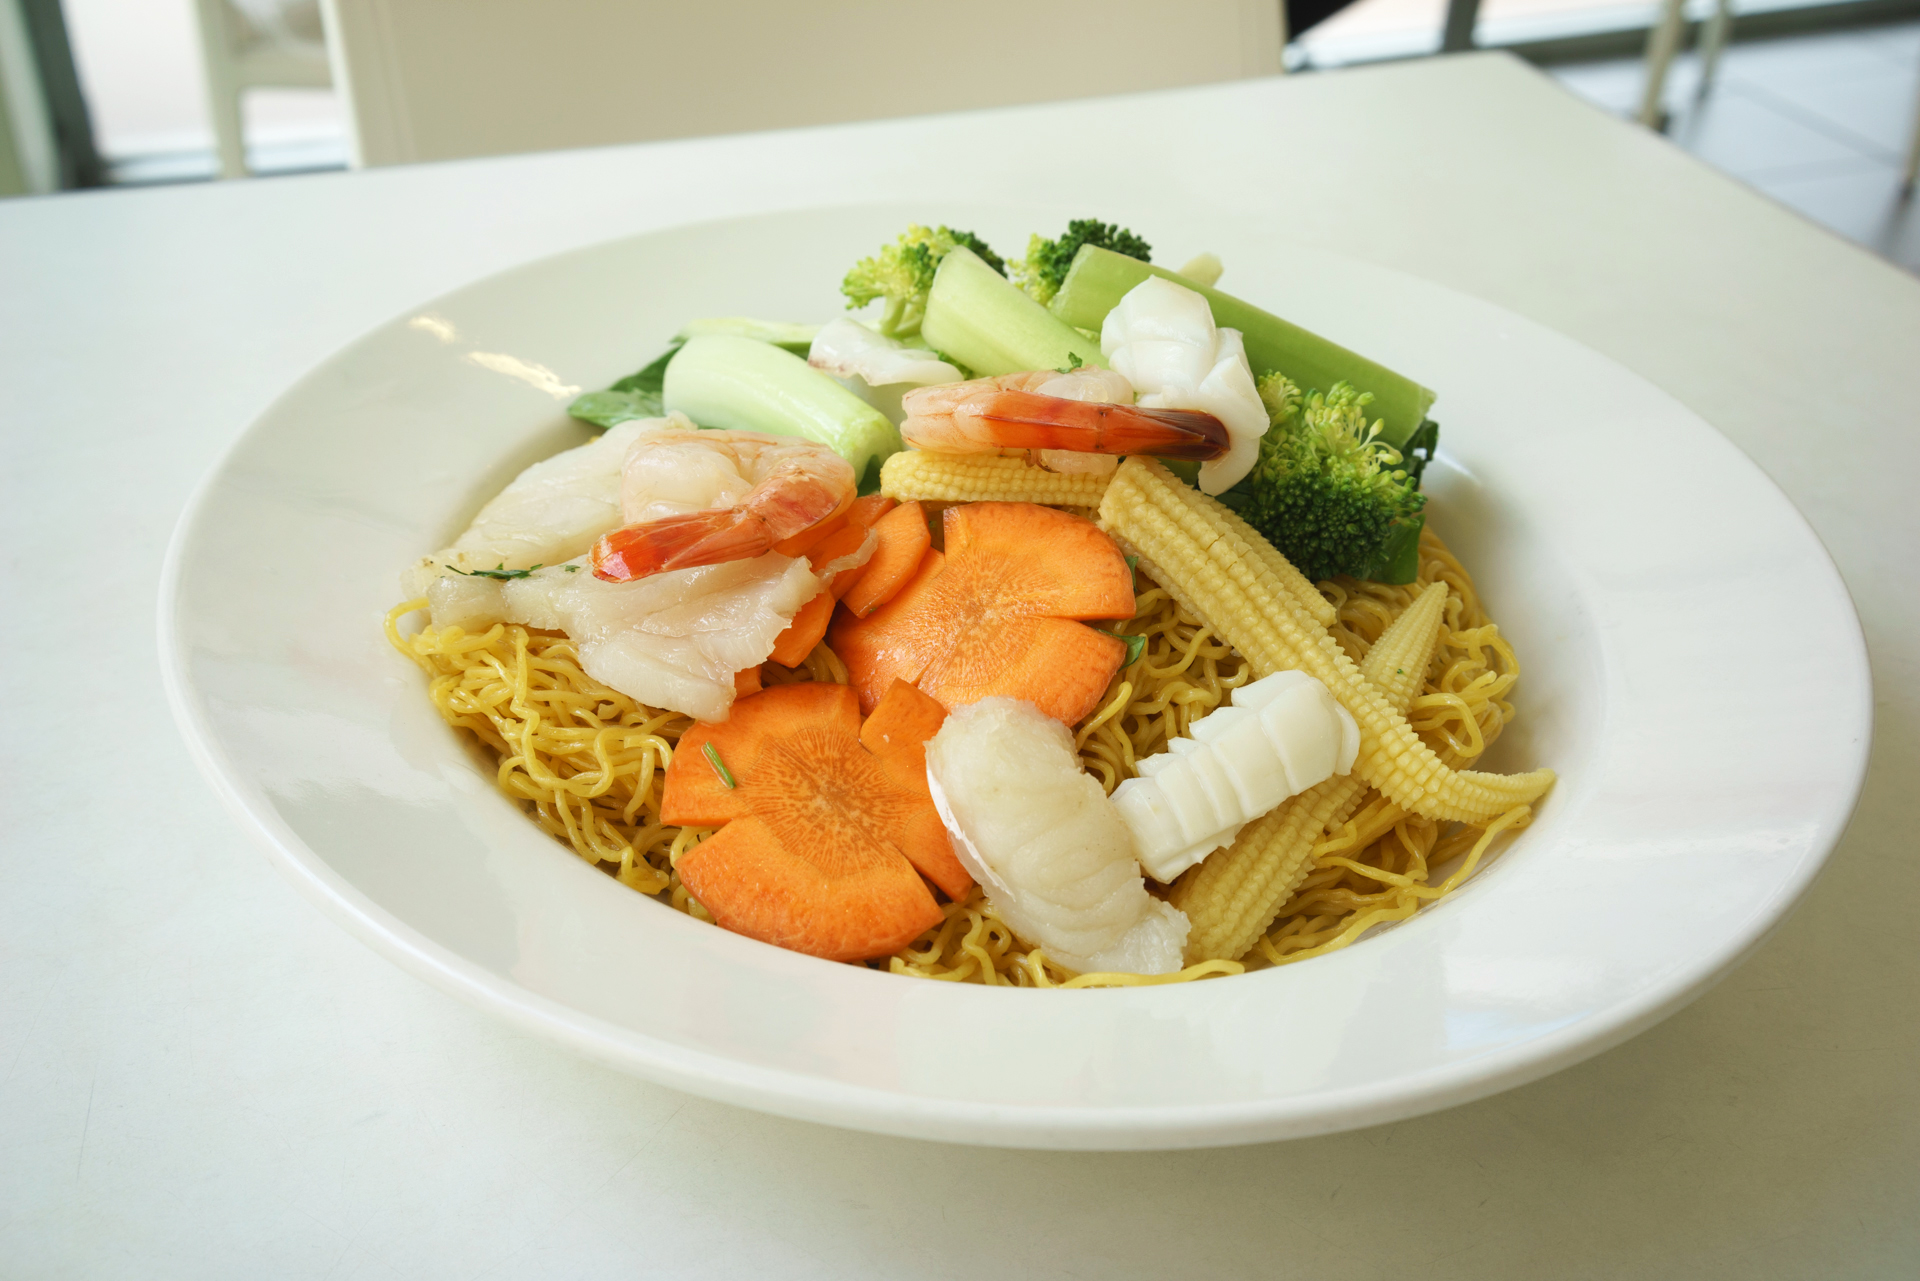 seafood stir fried crispy egg noodles ~ mi xao gion do bien